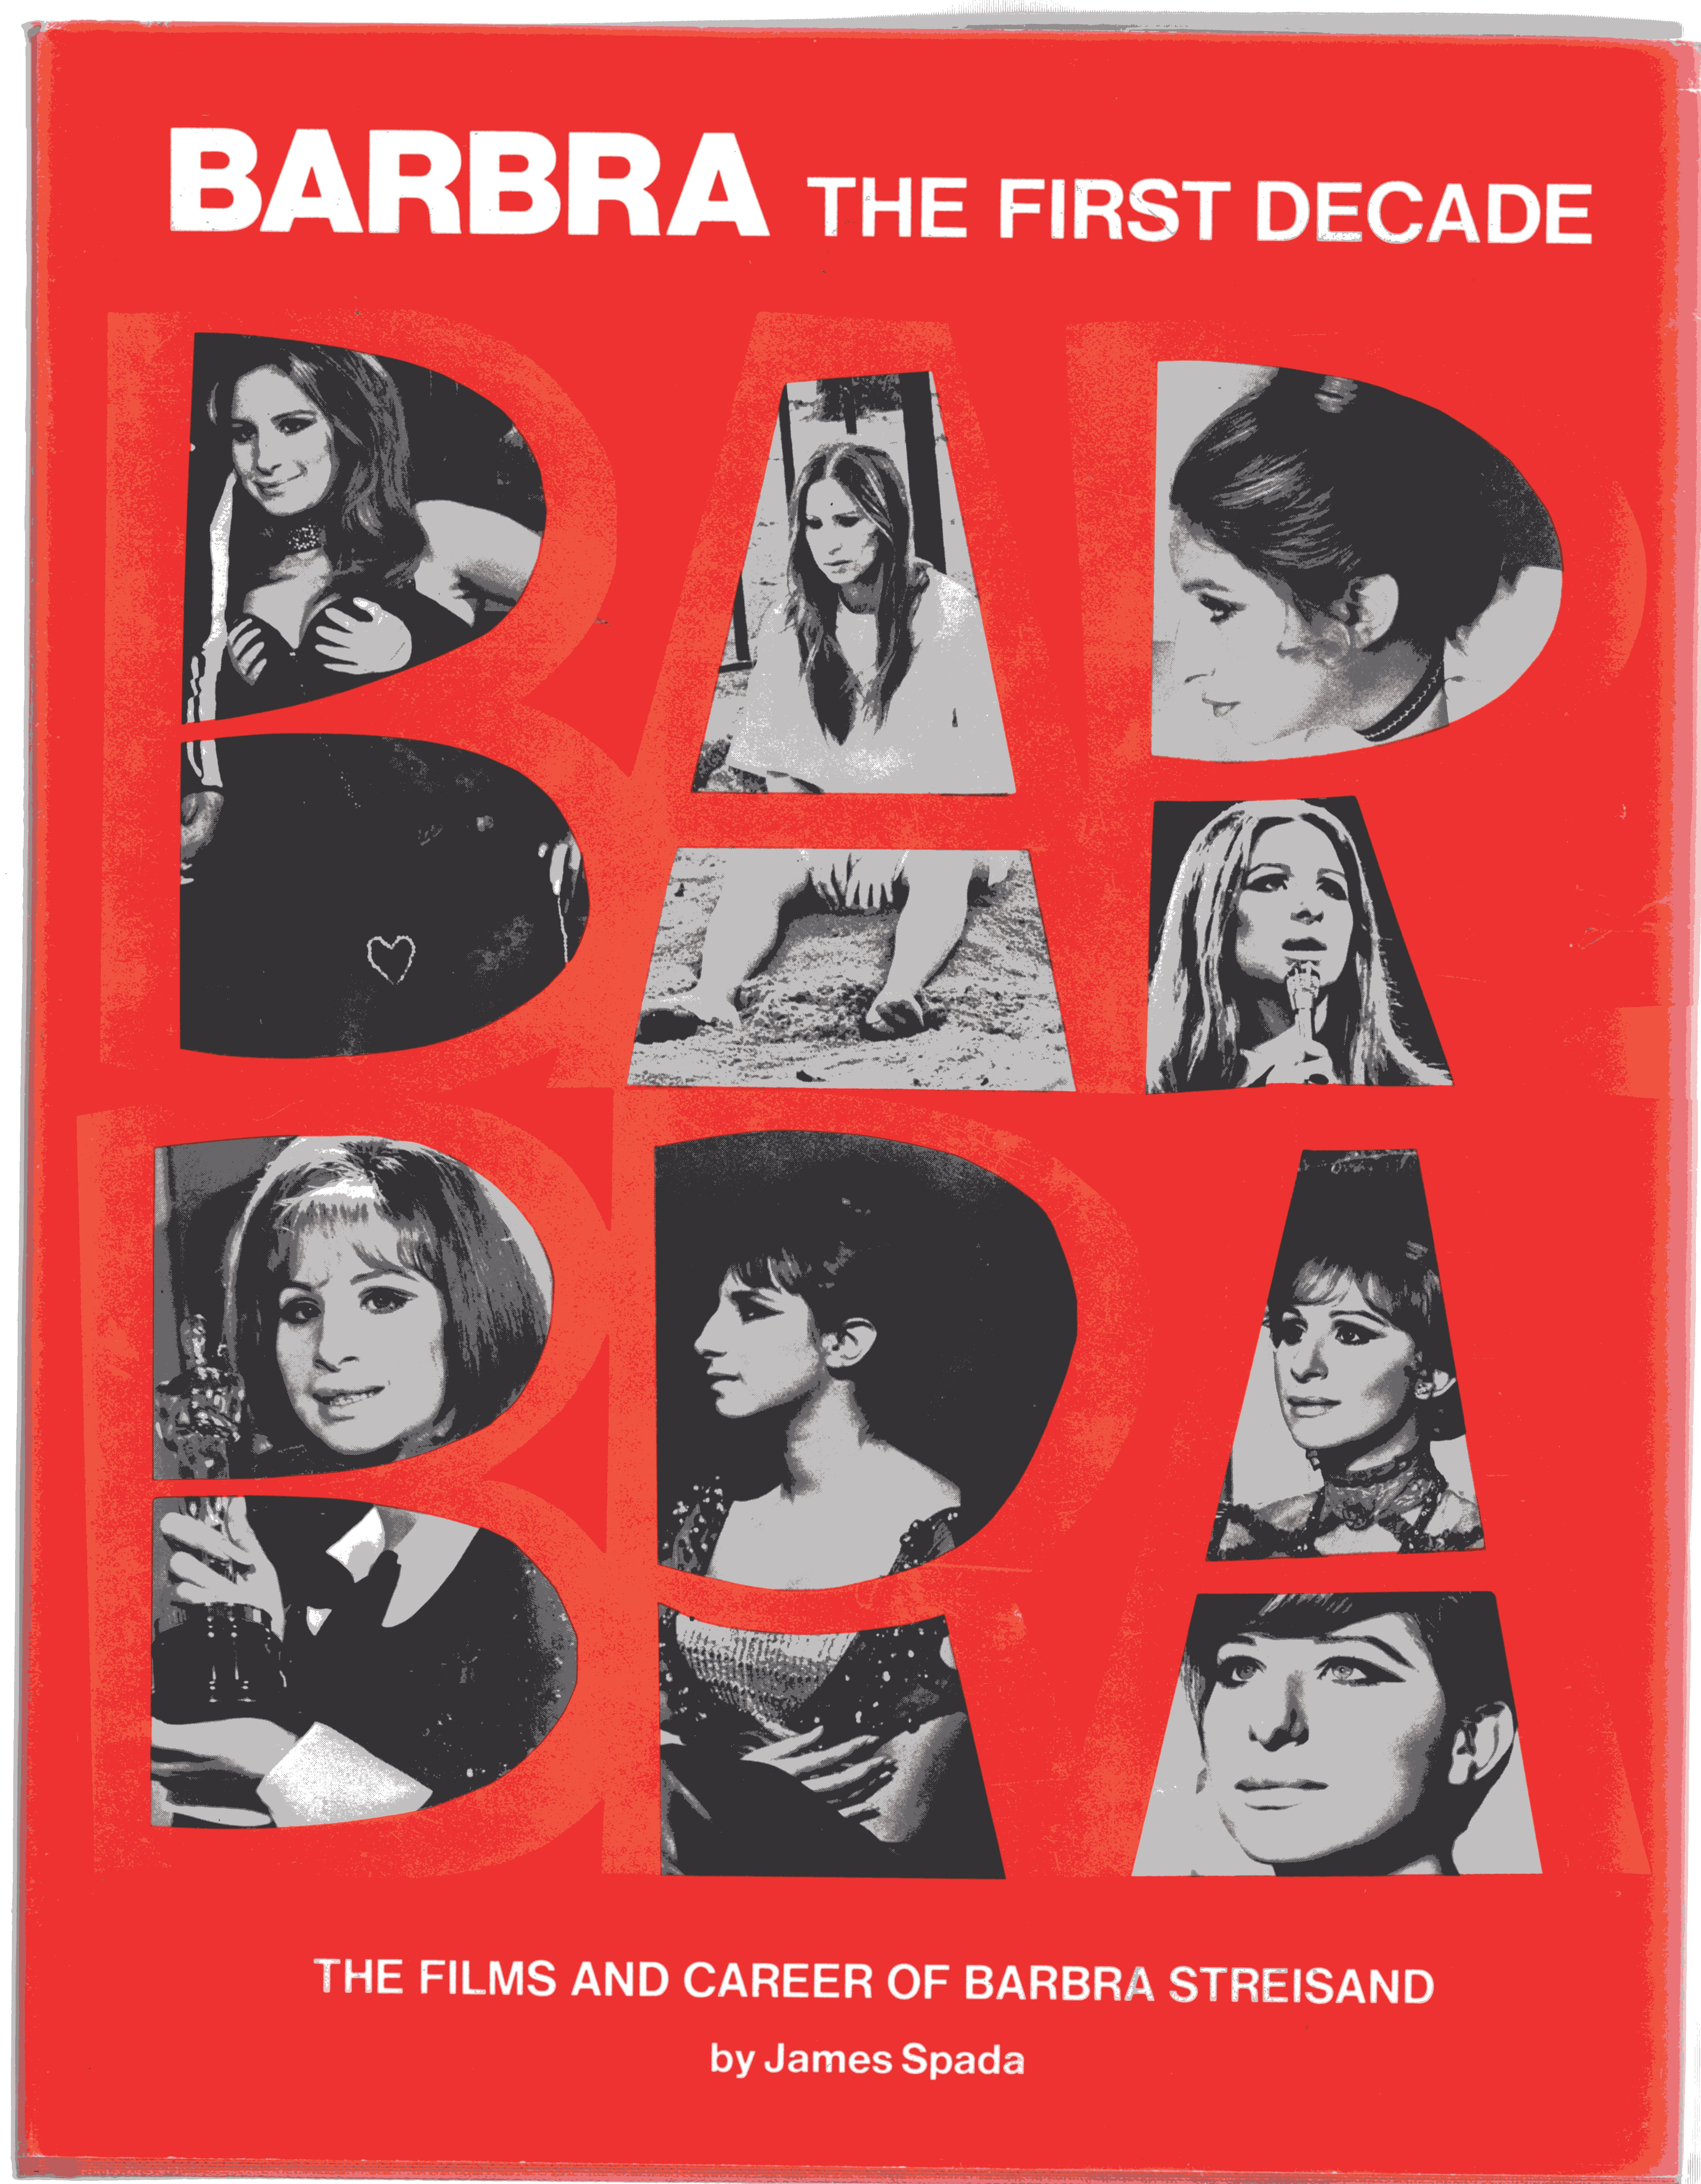 Image for Barbra, the First Decade: Films and Career of Barbra Streisand